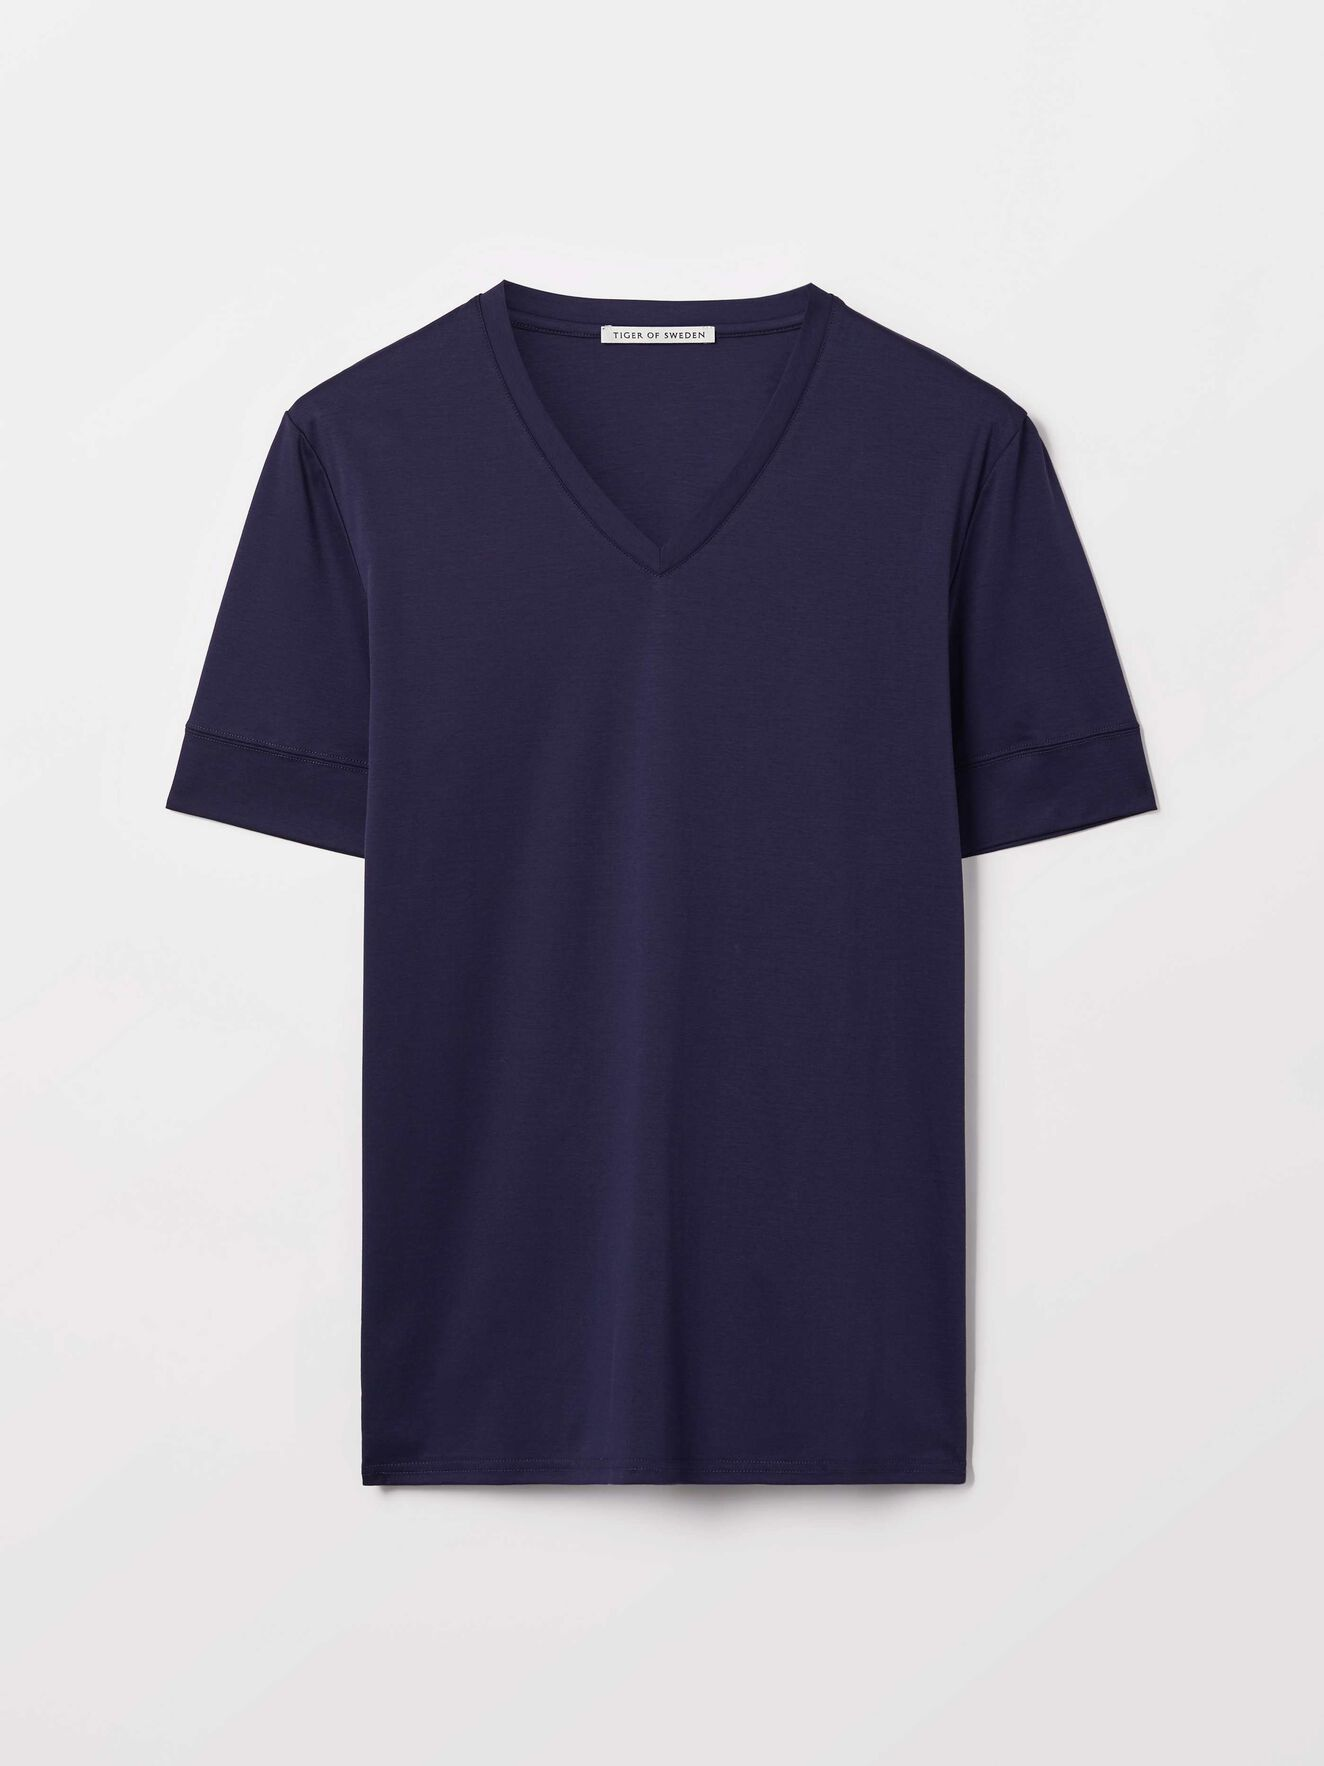 Diyon T-Shirt in Sky Captain from Tiger of Sweden